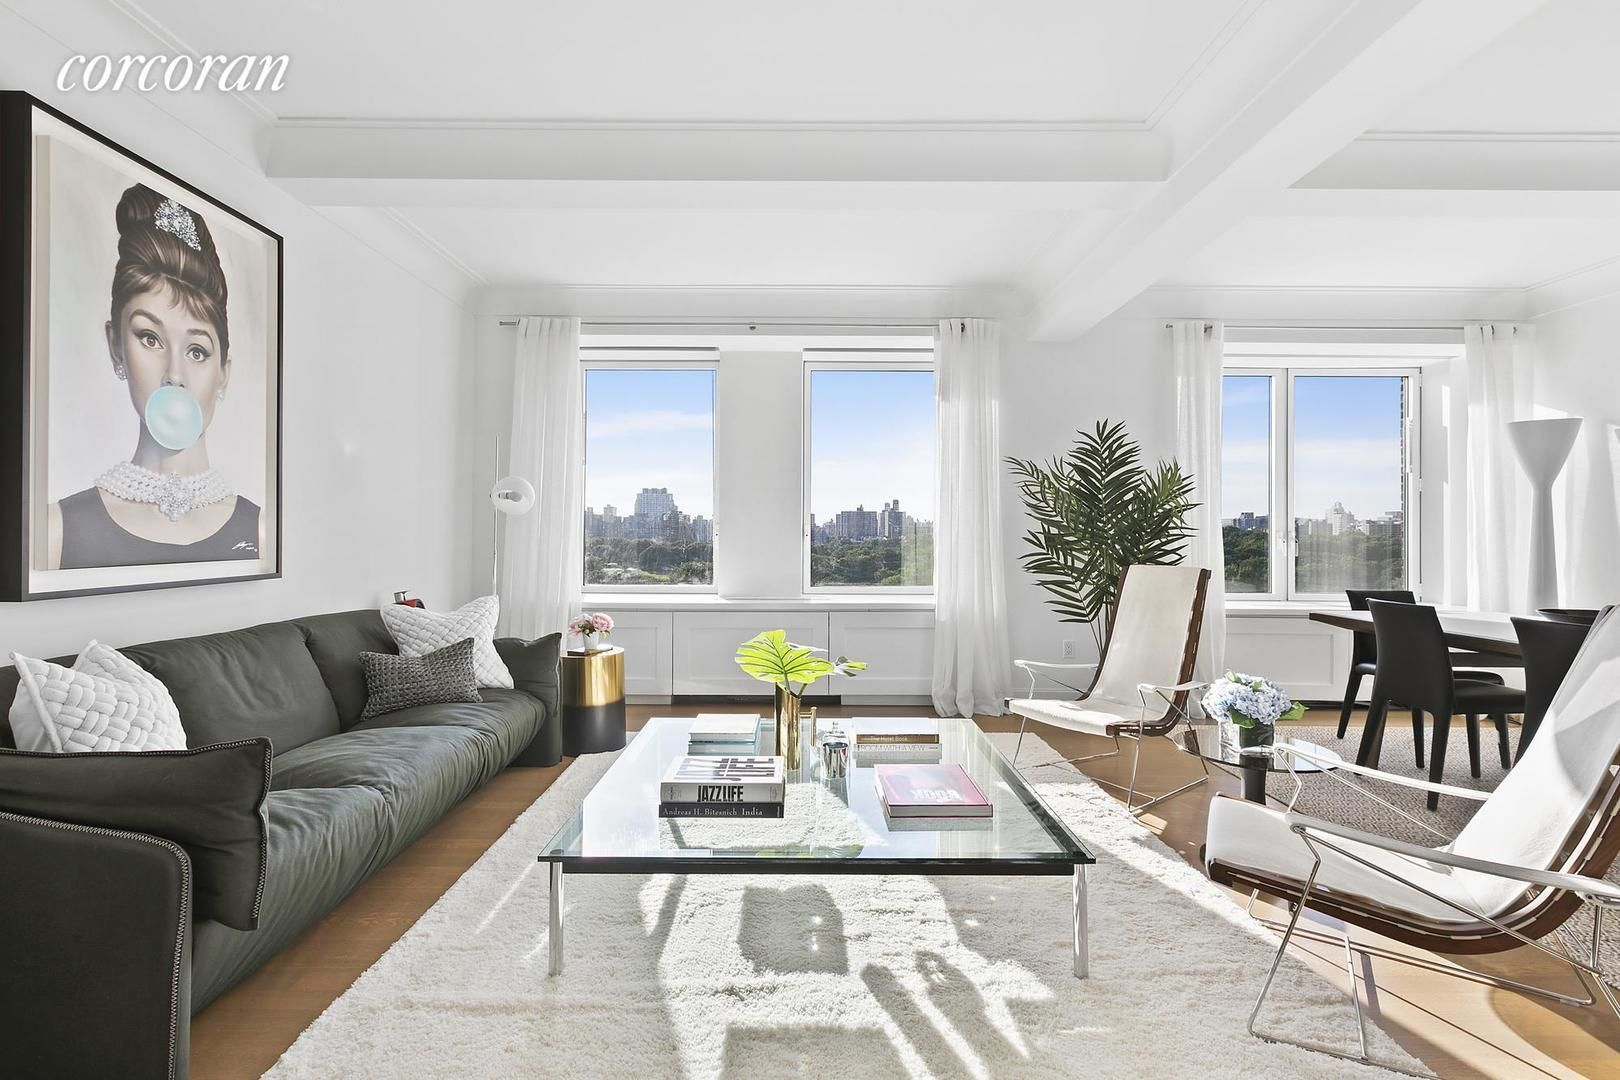 Apartment for sale at 1212 Fifth Avenue, Apt 15B